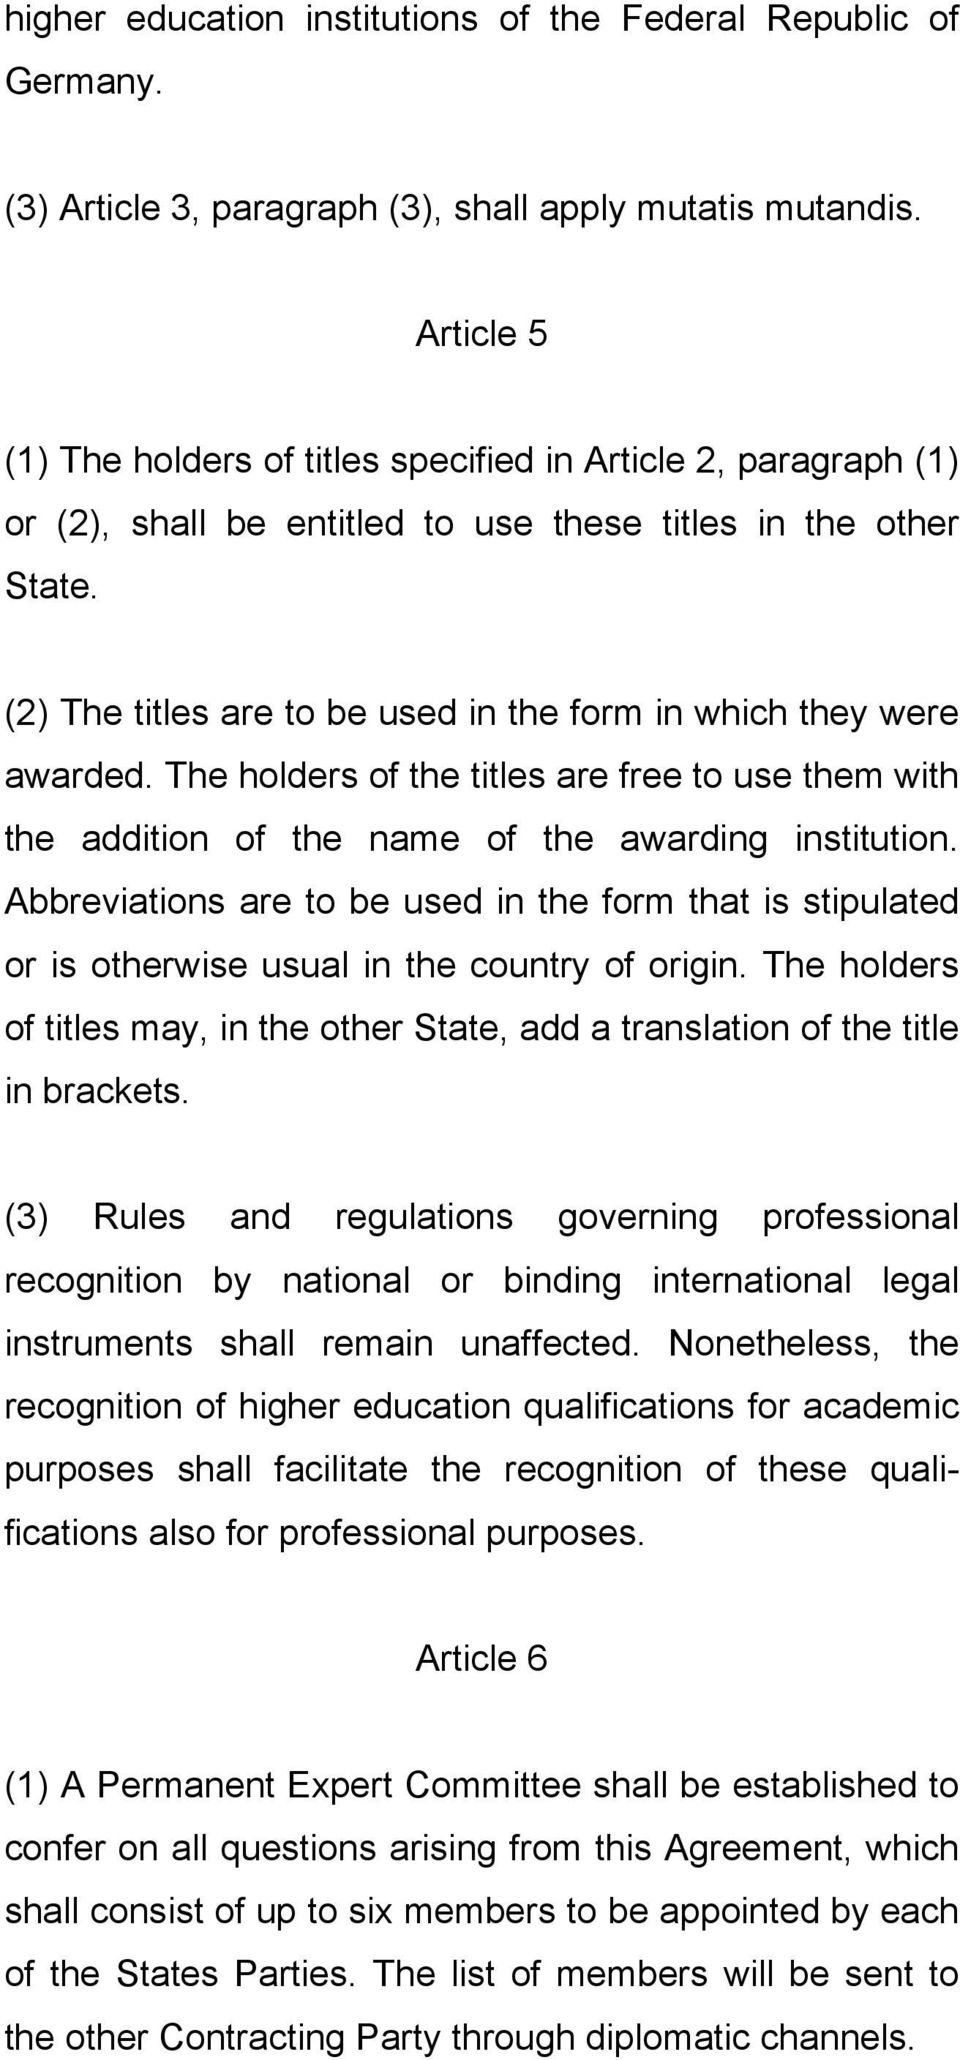 (2) The titles are to be used in the form in which they were awarded. The holders of the titles are free to use them with the addition of the name of the awarding institution.